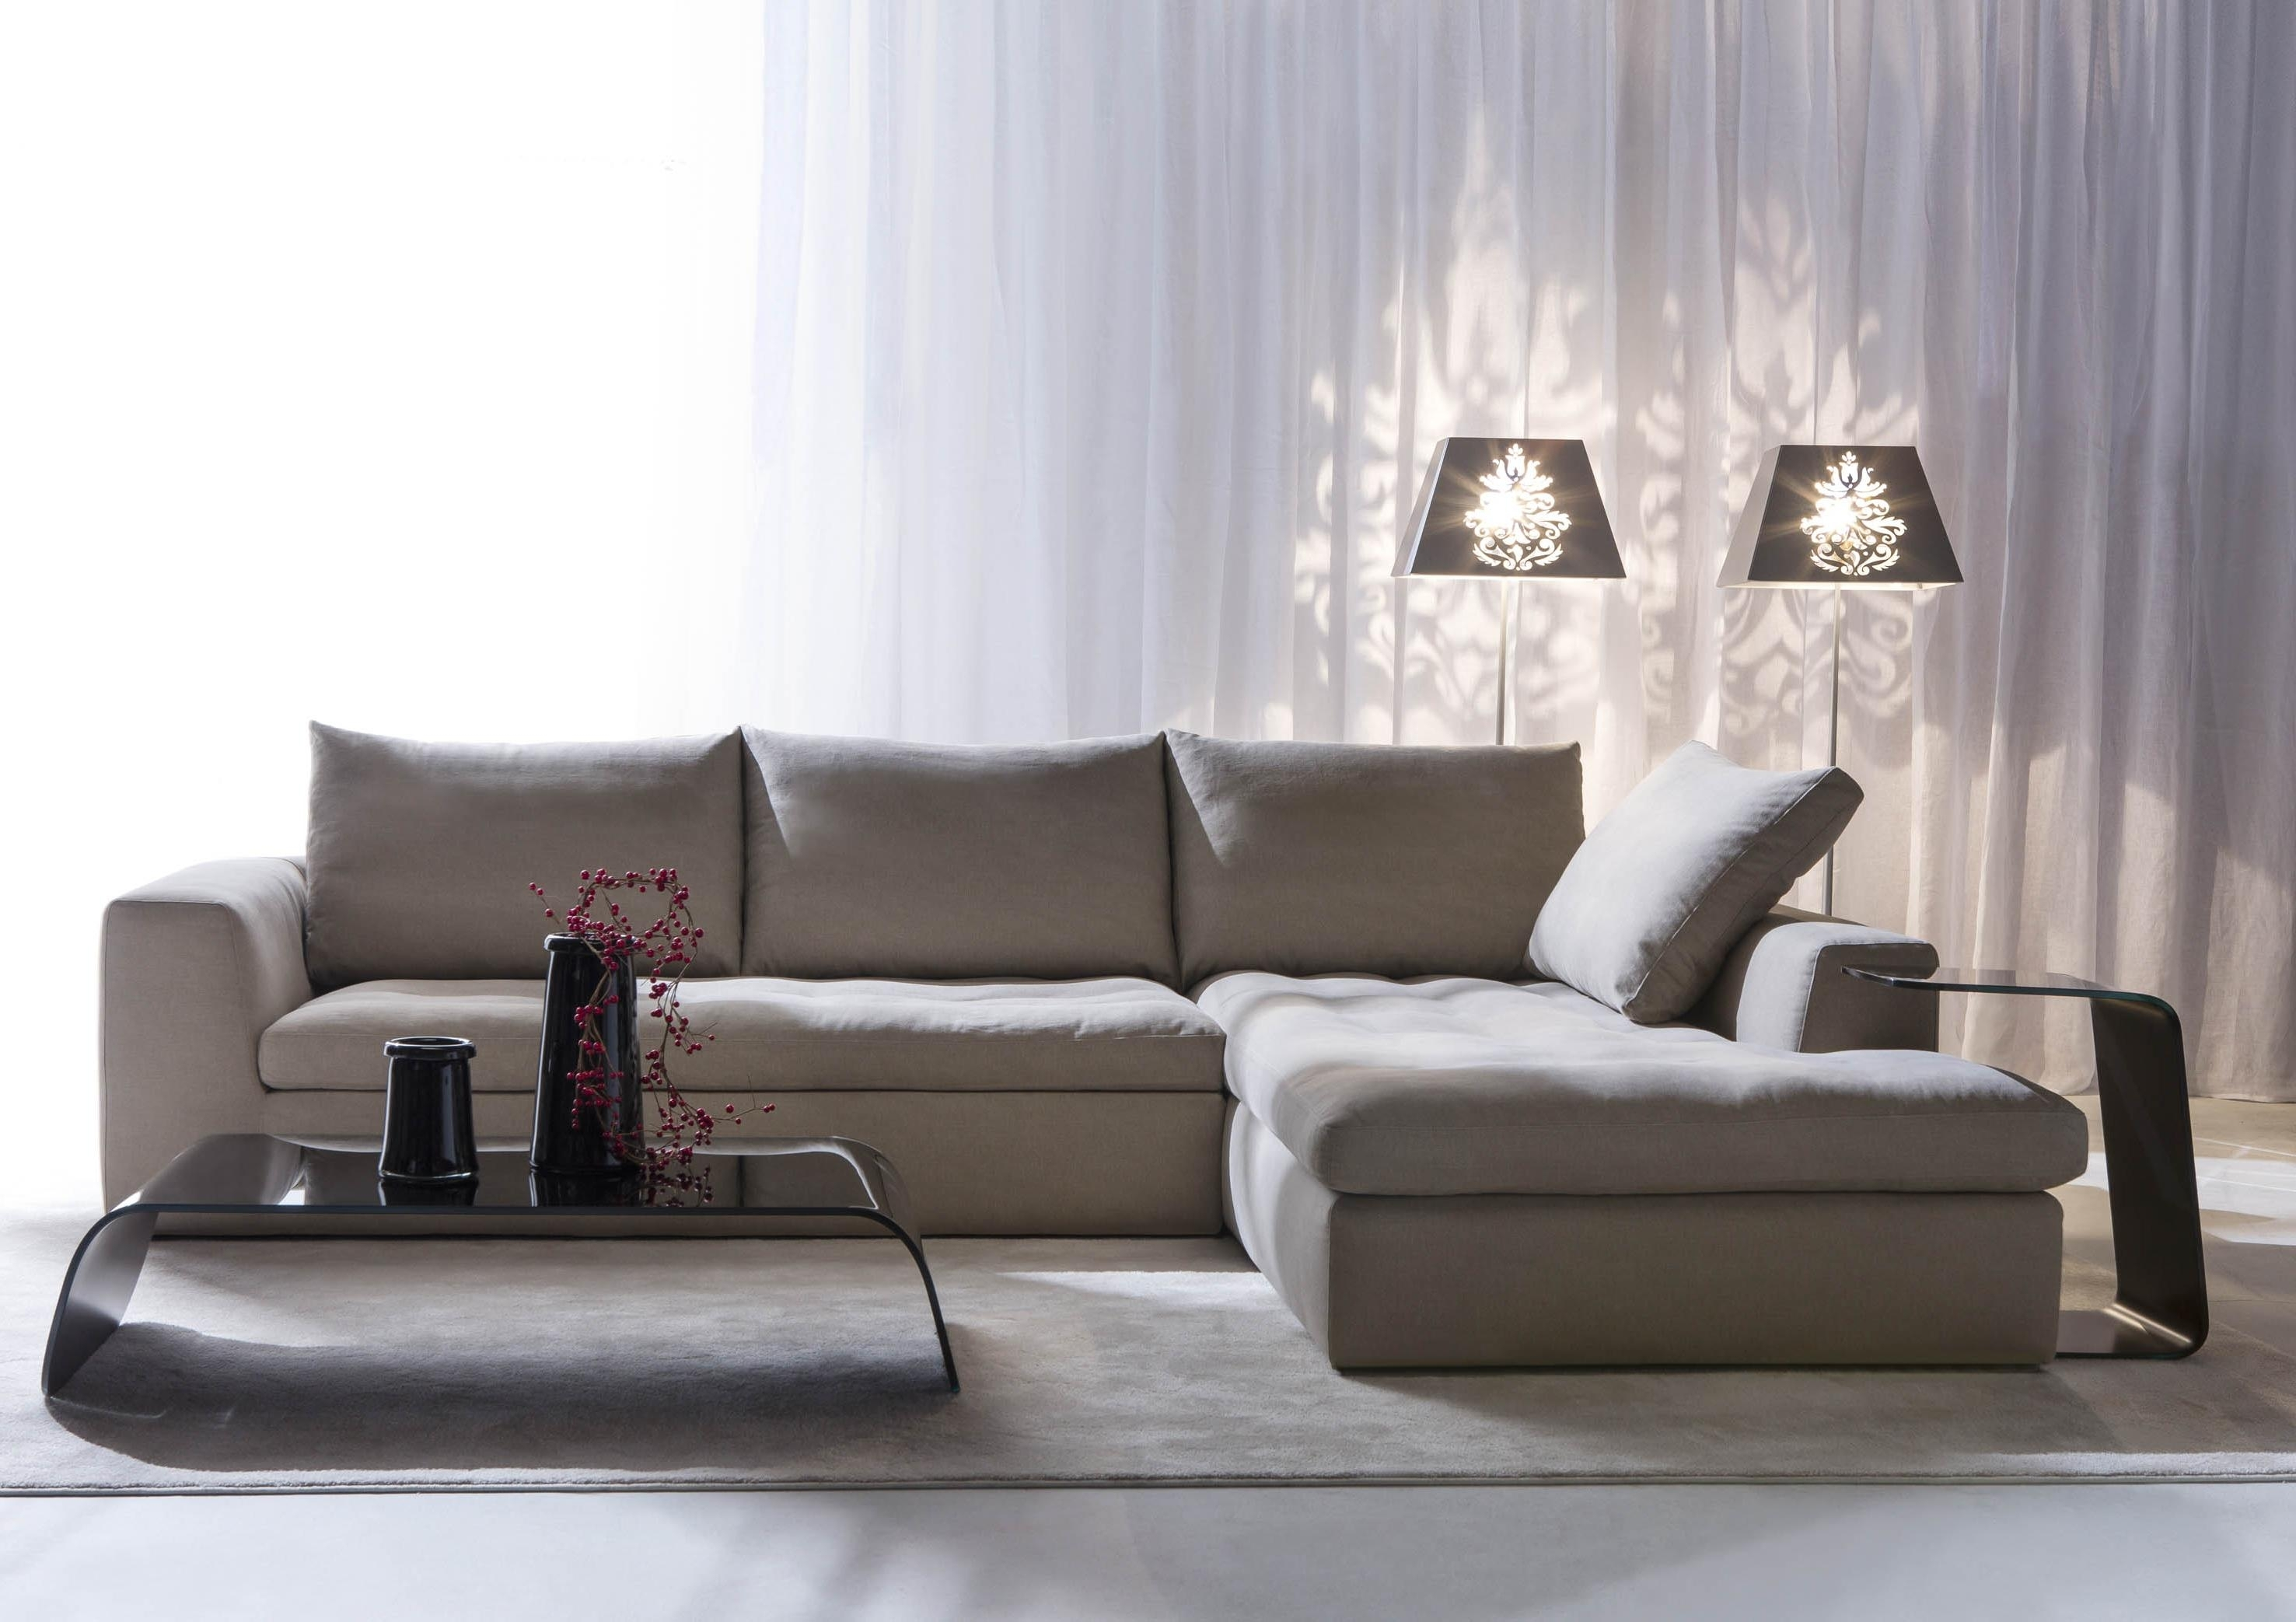 Sectional Sofa Design: Most High Class Wide Sectional Sofas Wide for Wide Sectional Sofas (Image 9 of 10)